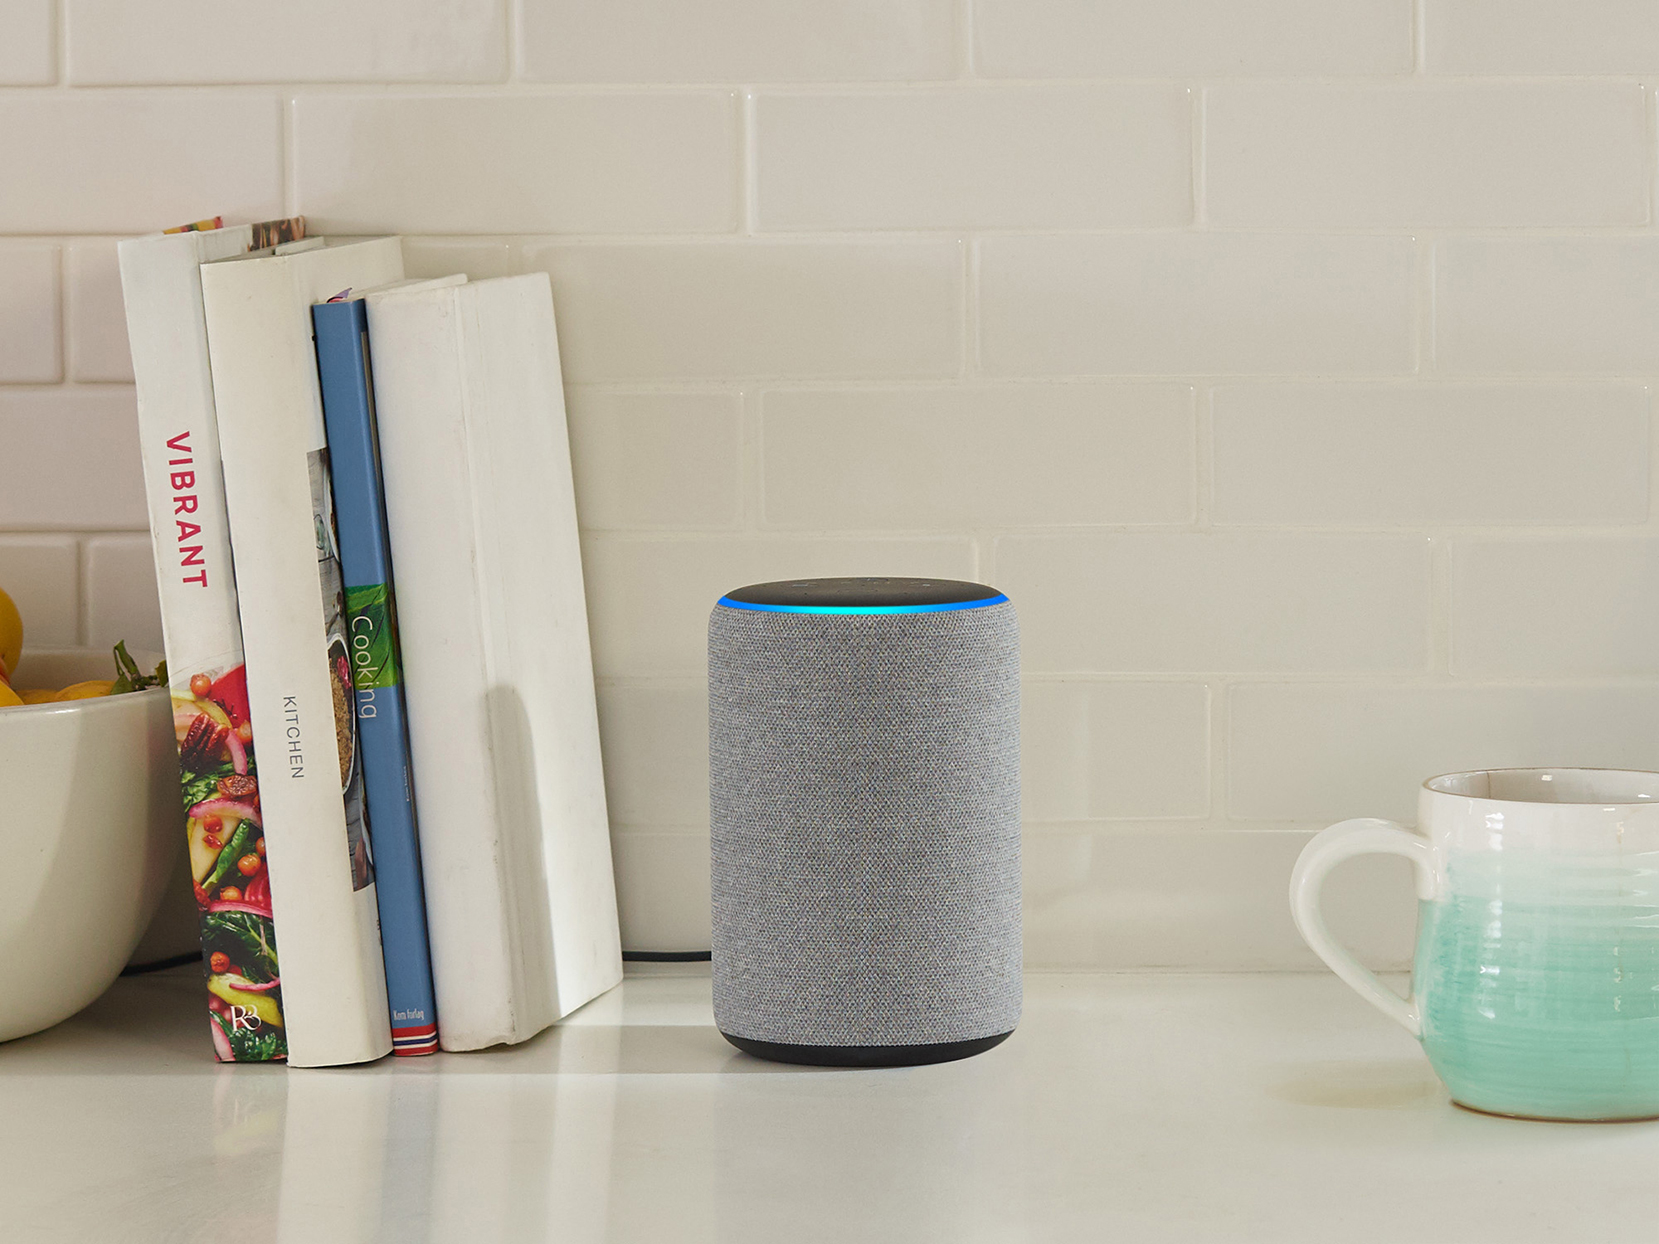 Amazon's Alexa comes under scrutiny of Luxembourg privacy watchdog